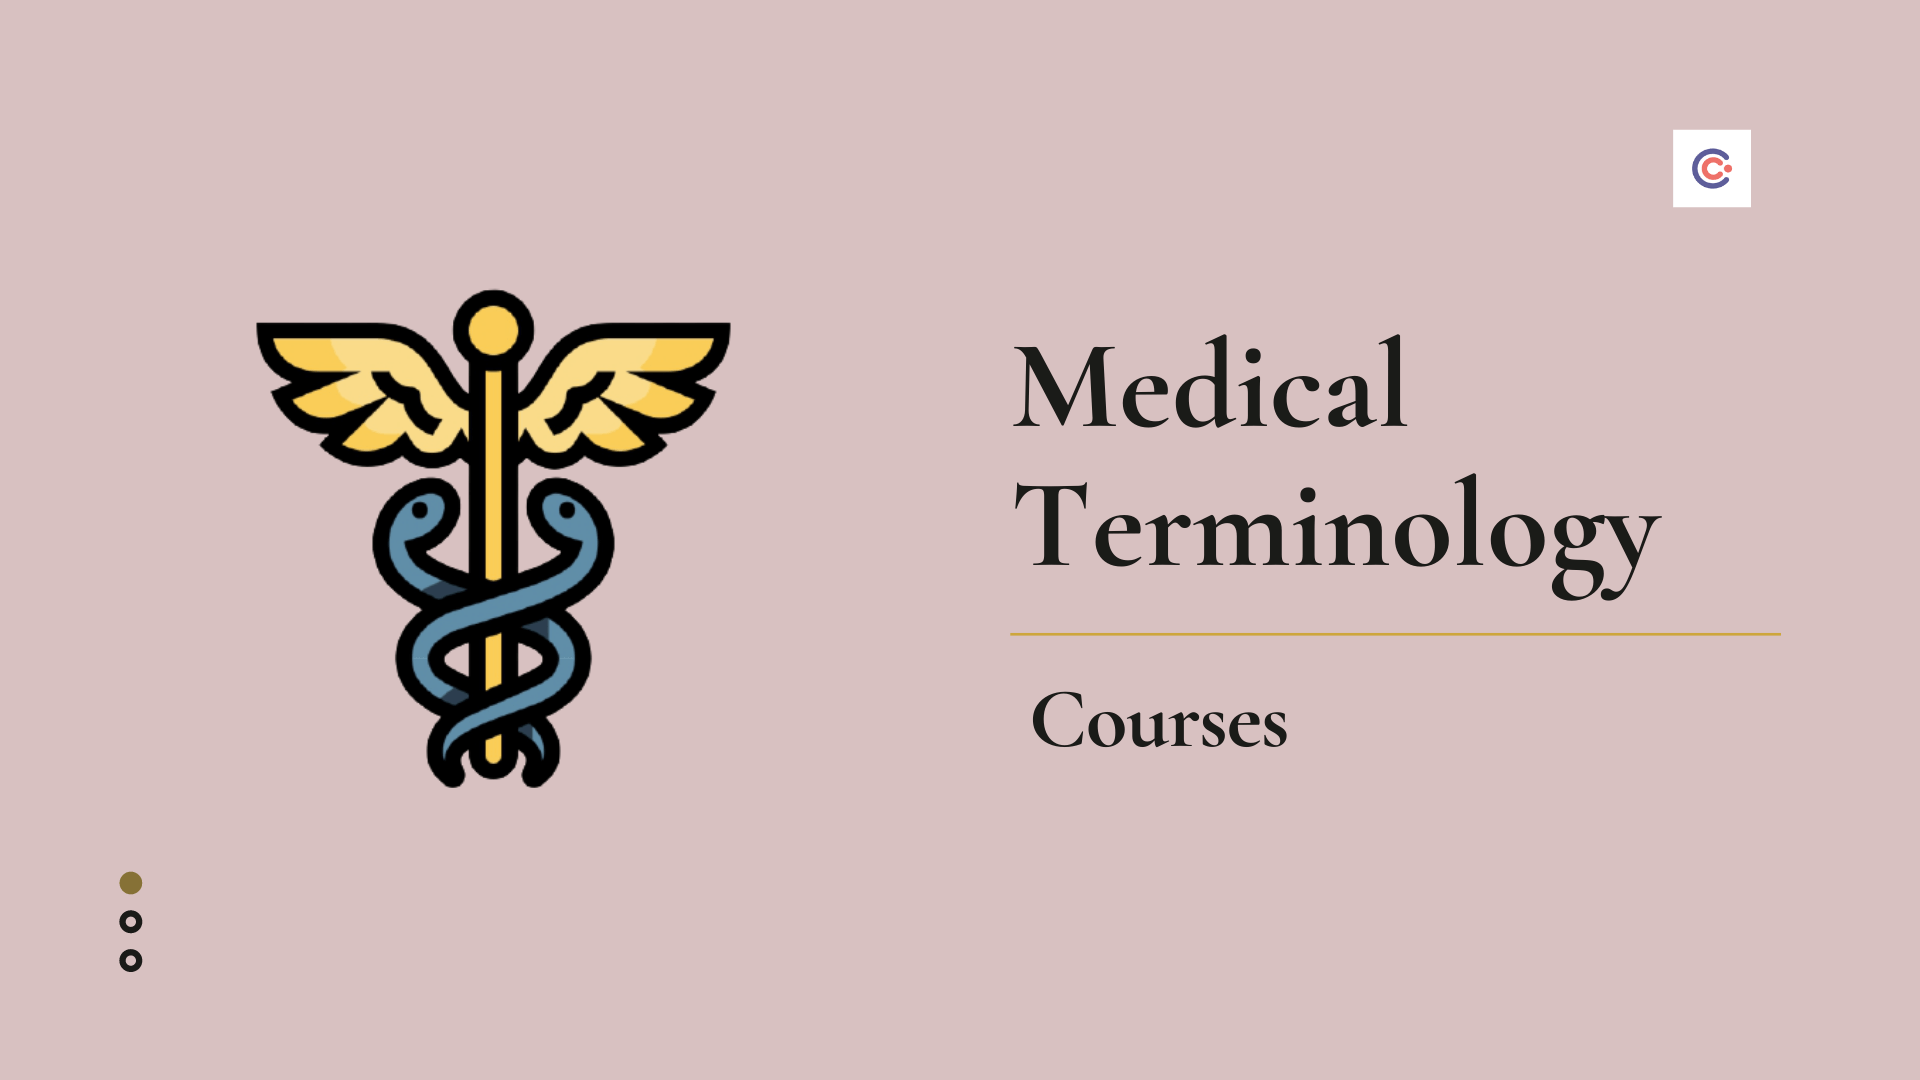 6 Best Medical Terminology Classes - Learn Medical Terminology Online